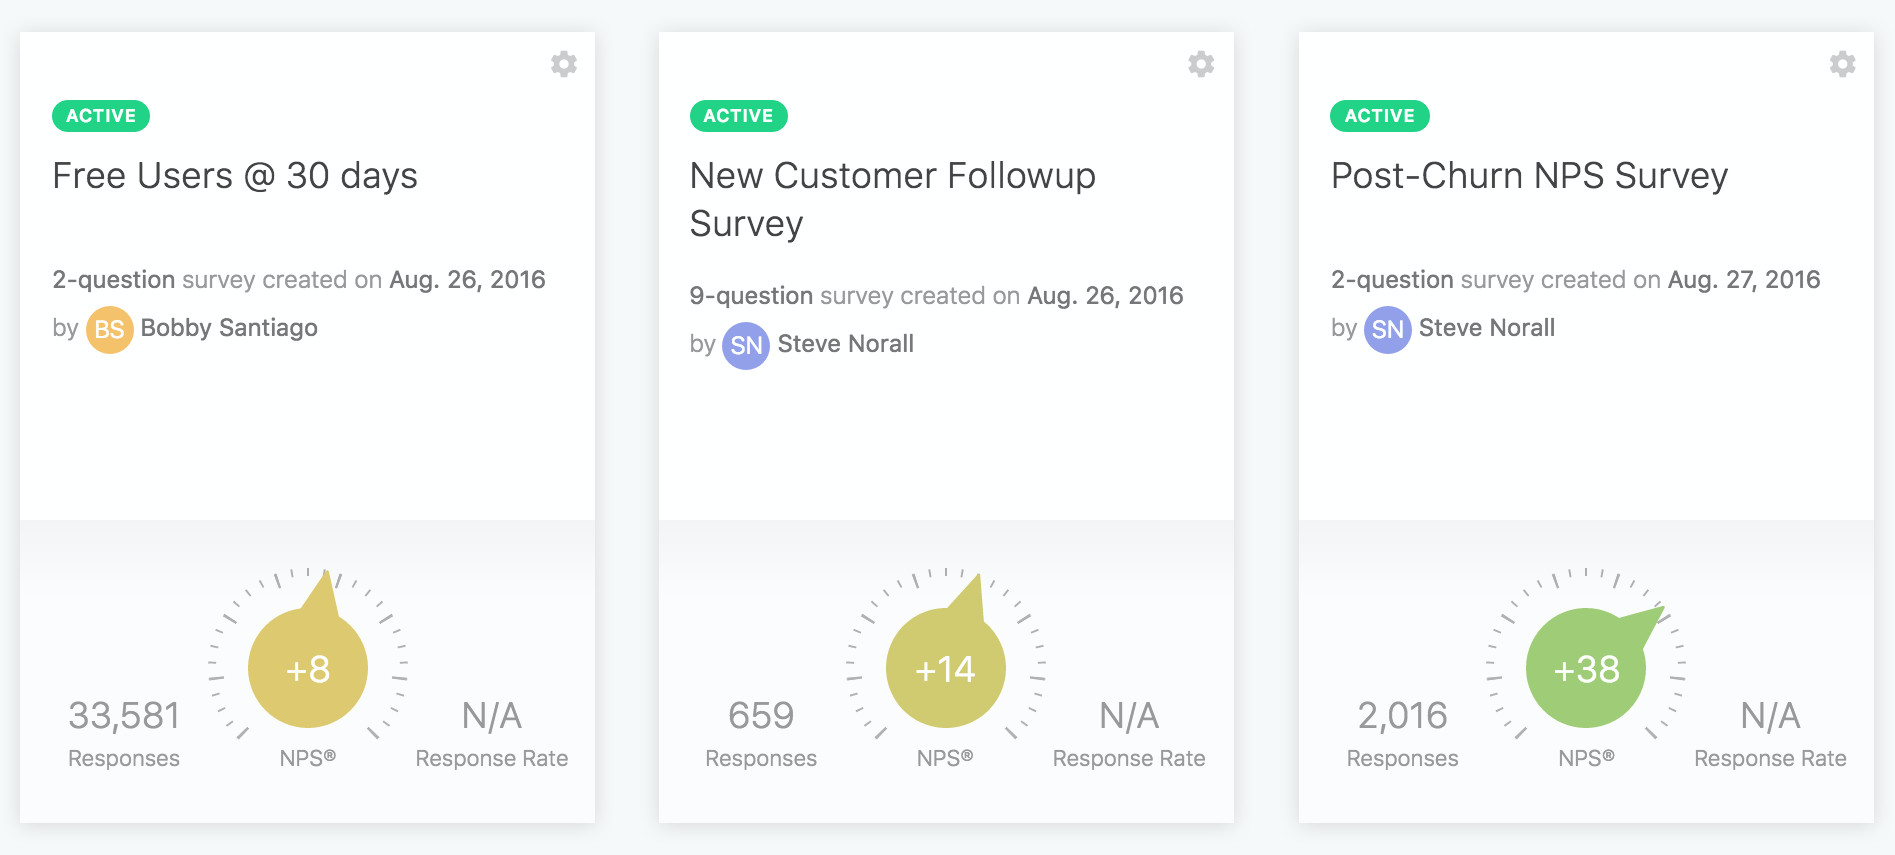 Monitor and optimize customer satisfaction at all relevant interaction points - from purchase to onboarding to post service requests and more